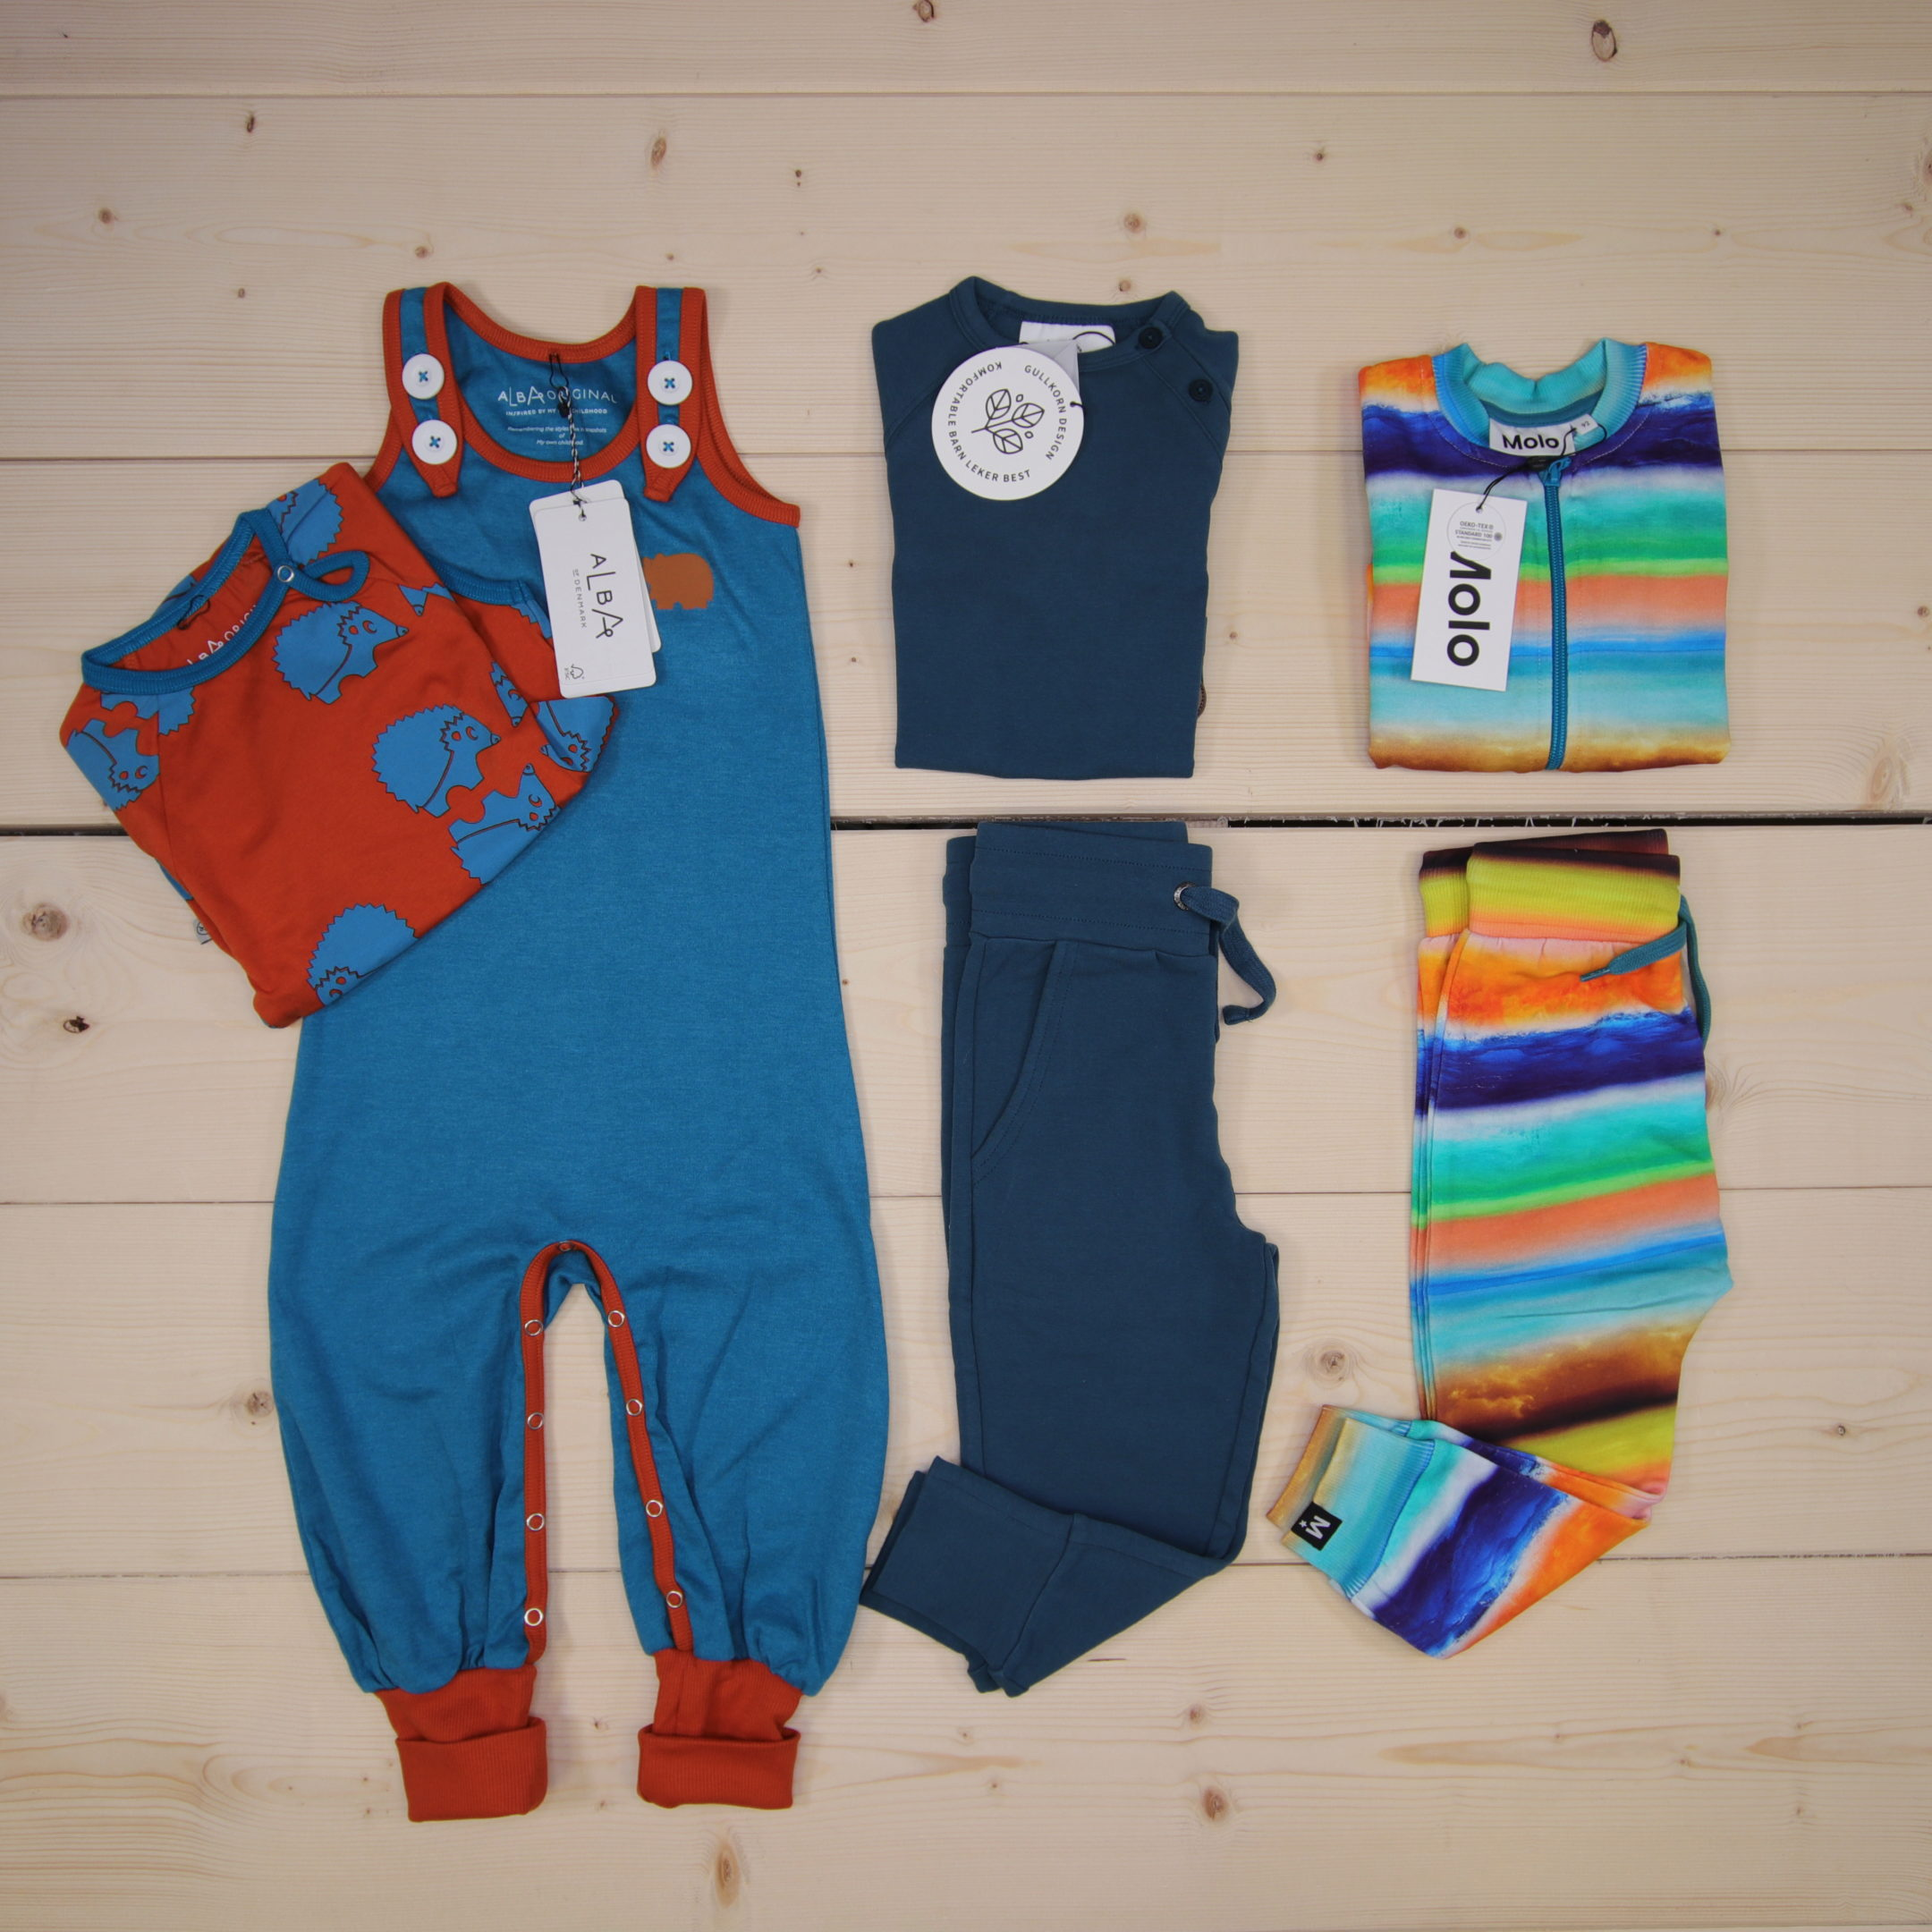 This is a 125 GBP* Småkassen that we prepared for a boy  in the styles cute, cool, and colorful in size 92